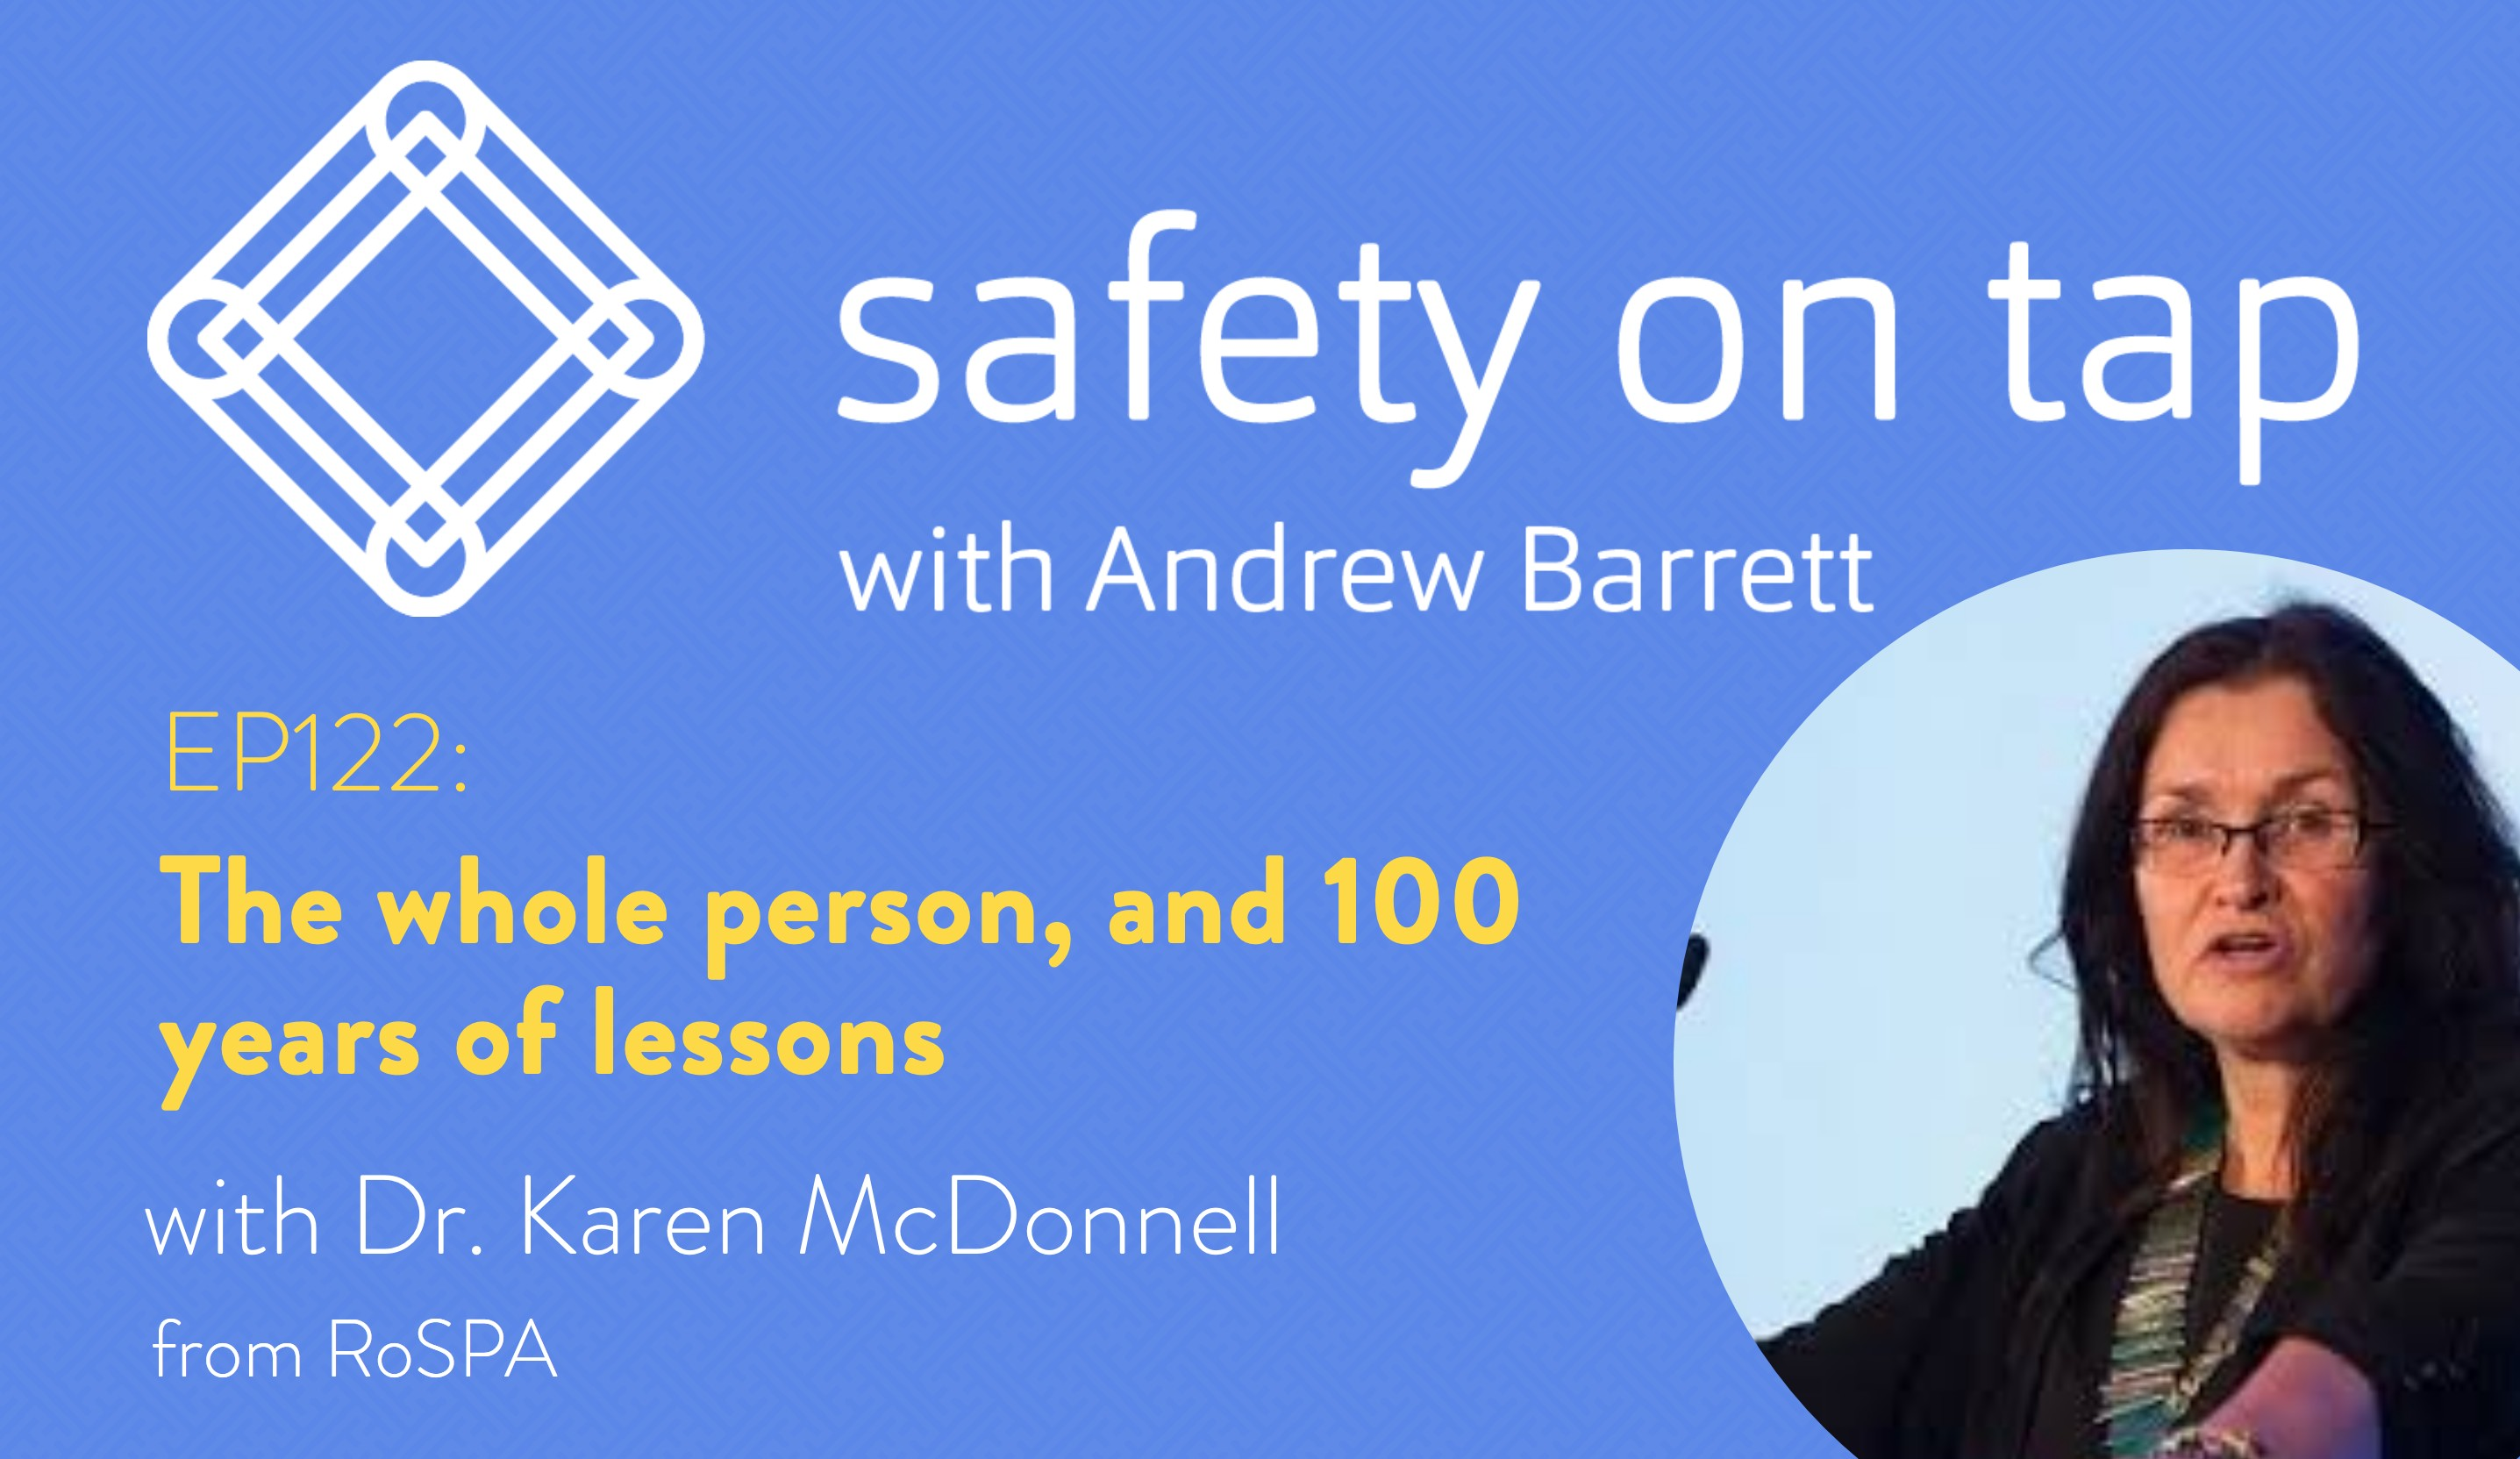 Ep122: The whole person, and 100 years of lessons, with Dr Karen McDonnell from RoSPA